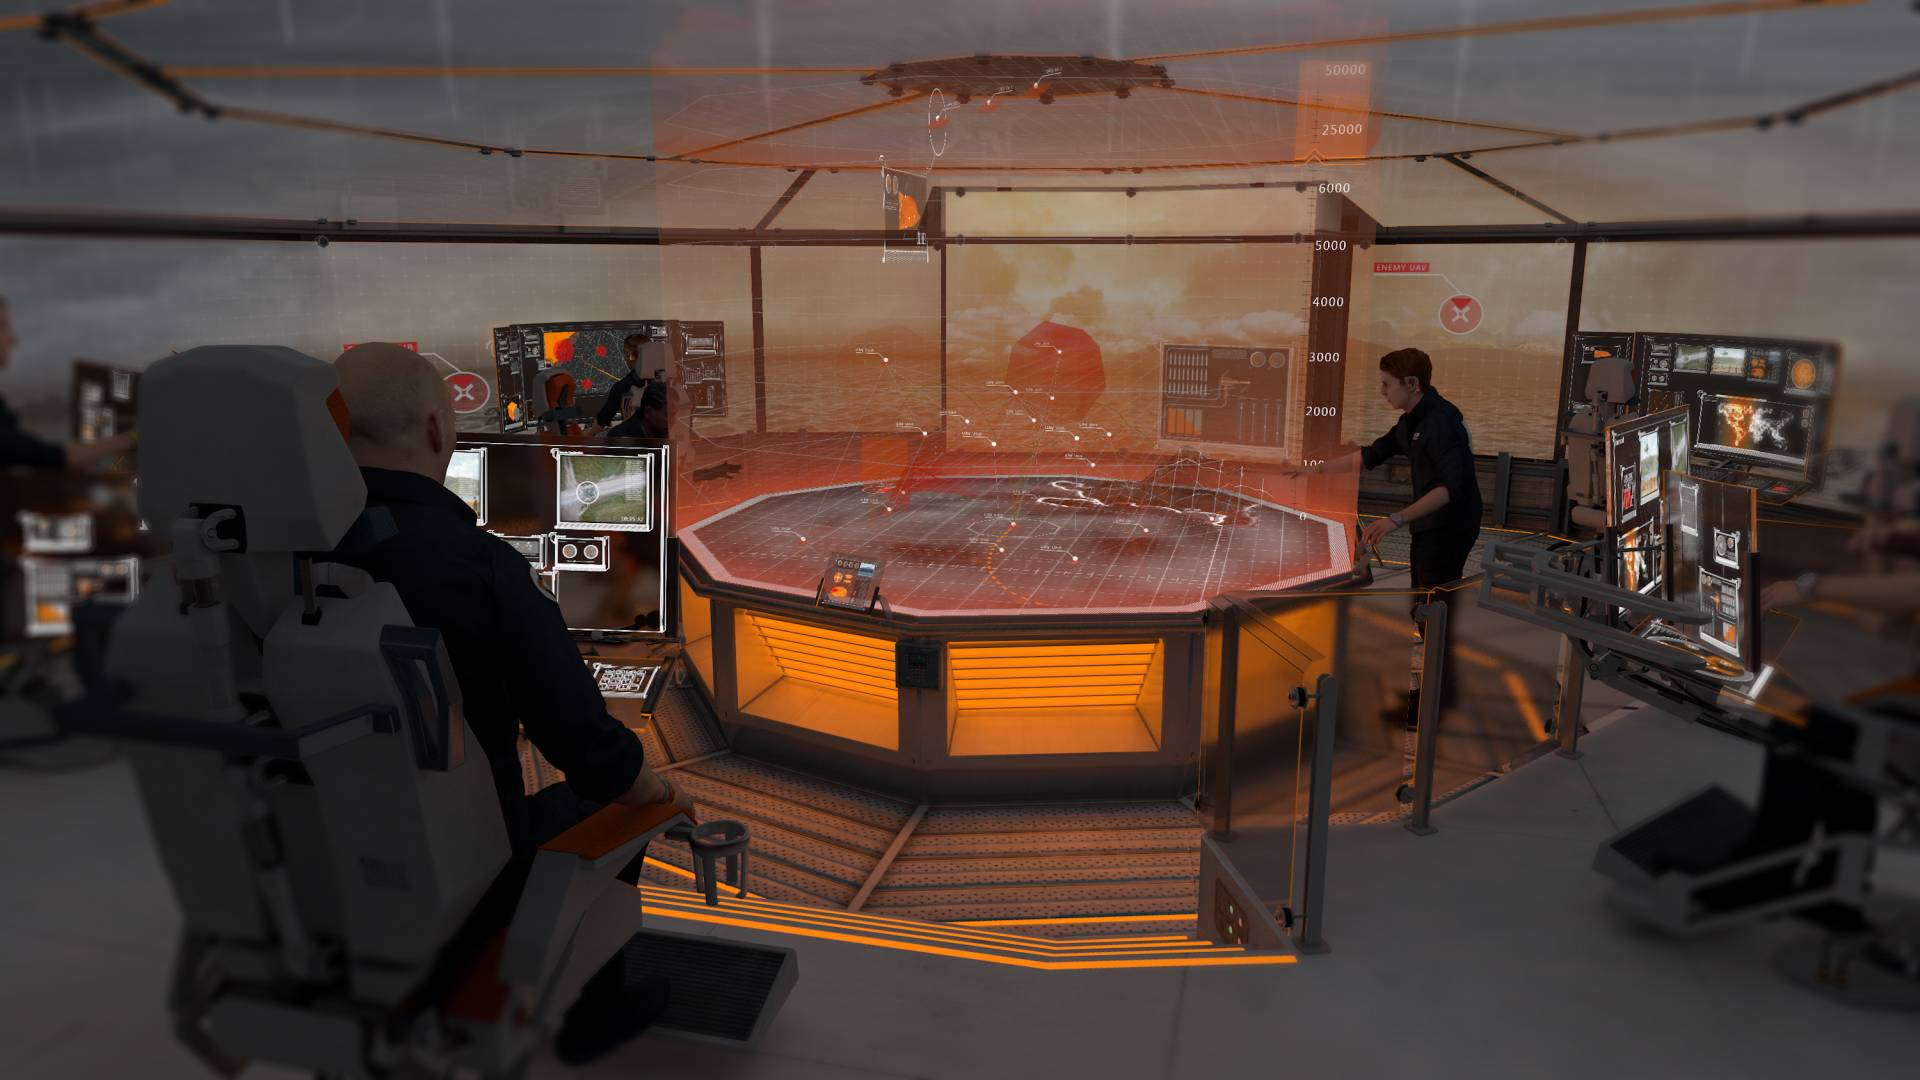 Startpoint Dreadnought T2050 Warship Ops Room (image courtesy of Startpoint).